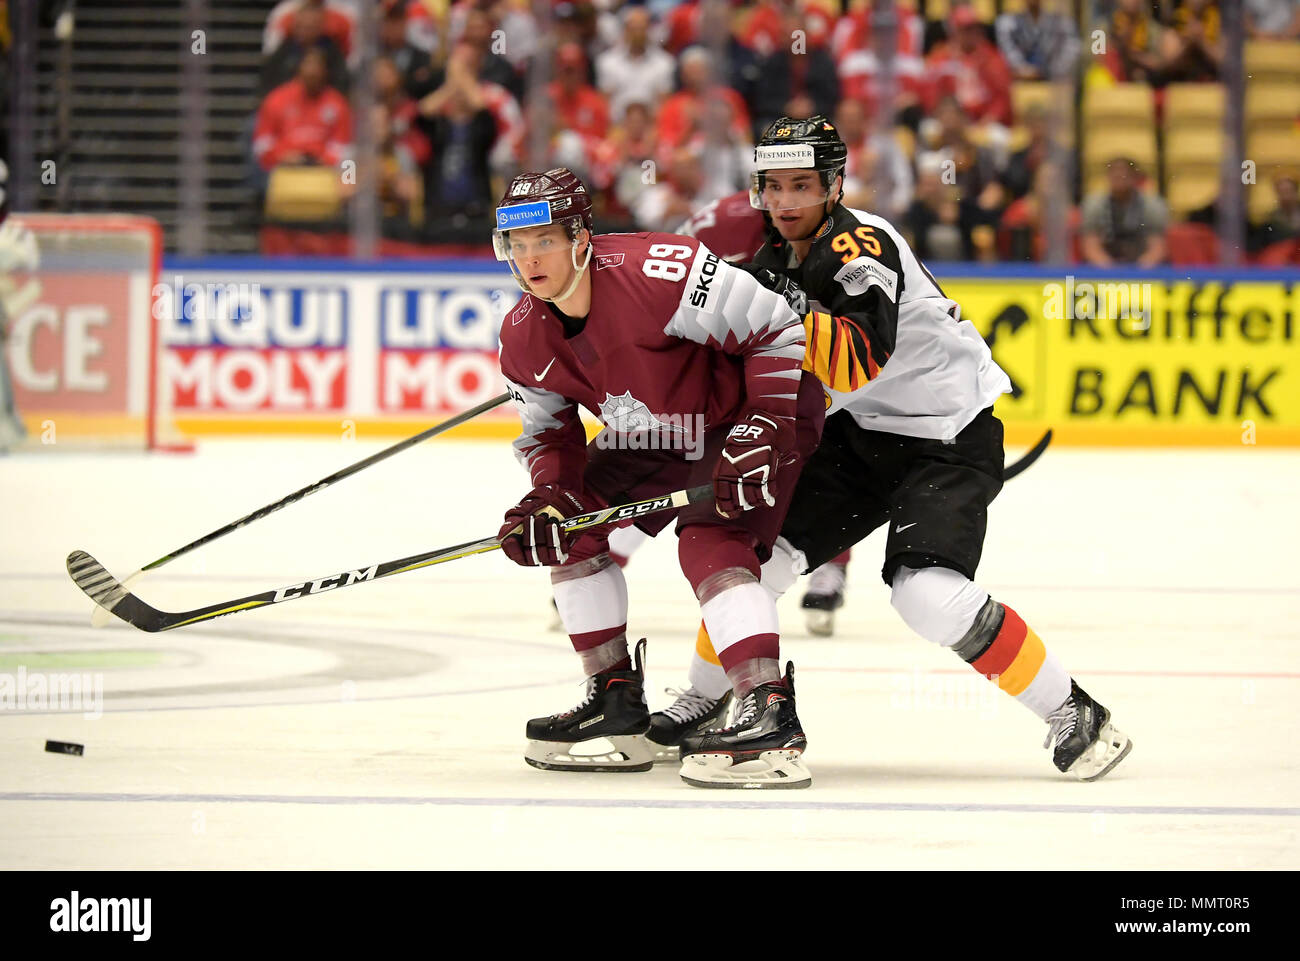 Herning, Denmark.. 12th May, 2018. Nikita Jevpalovs of Team Latvia and Frederik Tiffels of Team Germany during the match between Latvia and Germany on May 12, 1818 in Herning, Denmark. (Photo by Marco Leipold/City-Press GbR) | usage worldwide Credit: dpa picture alliance/Alamy Live News Stock Photo